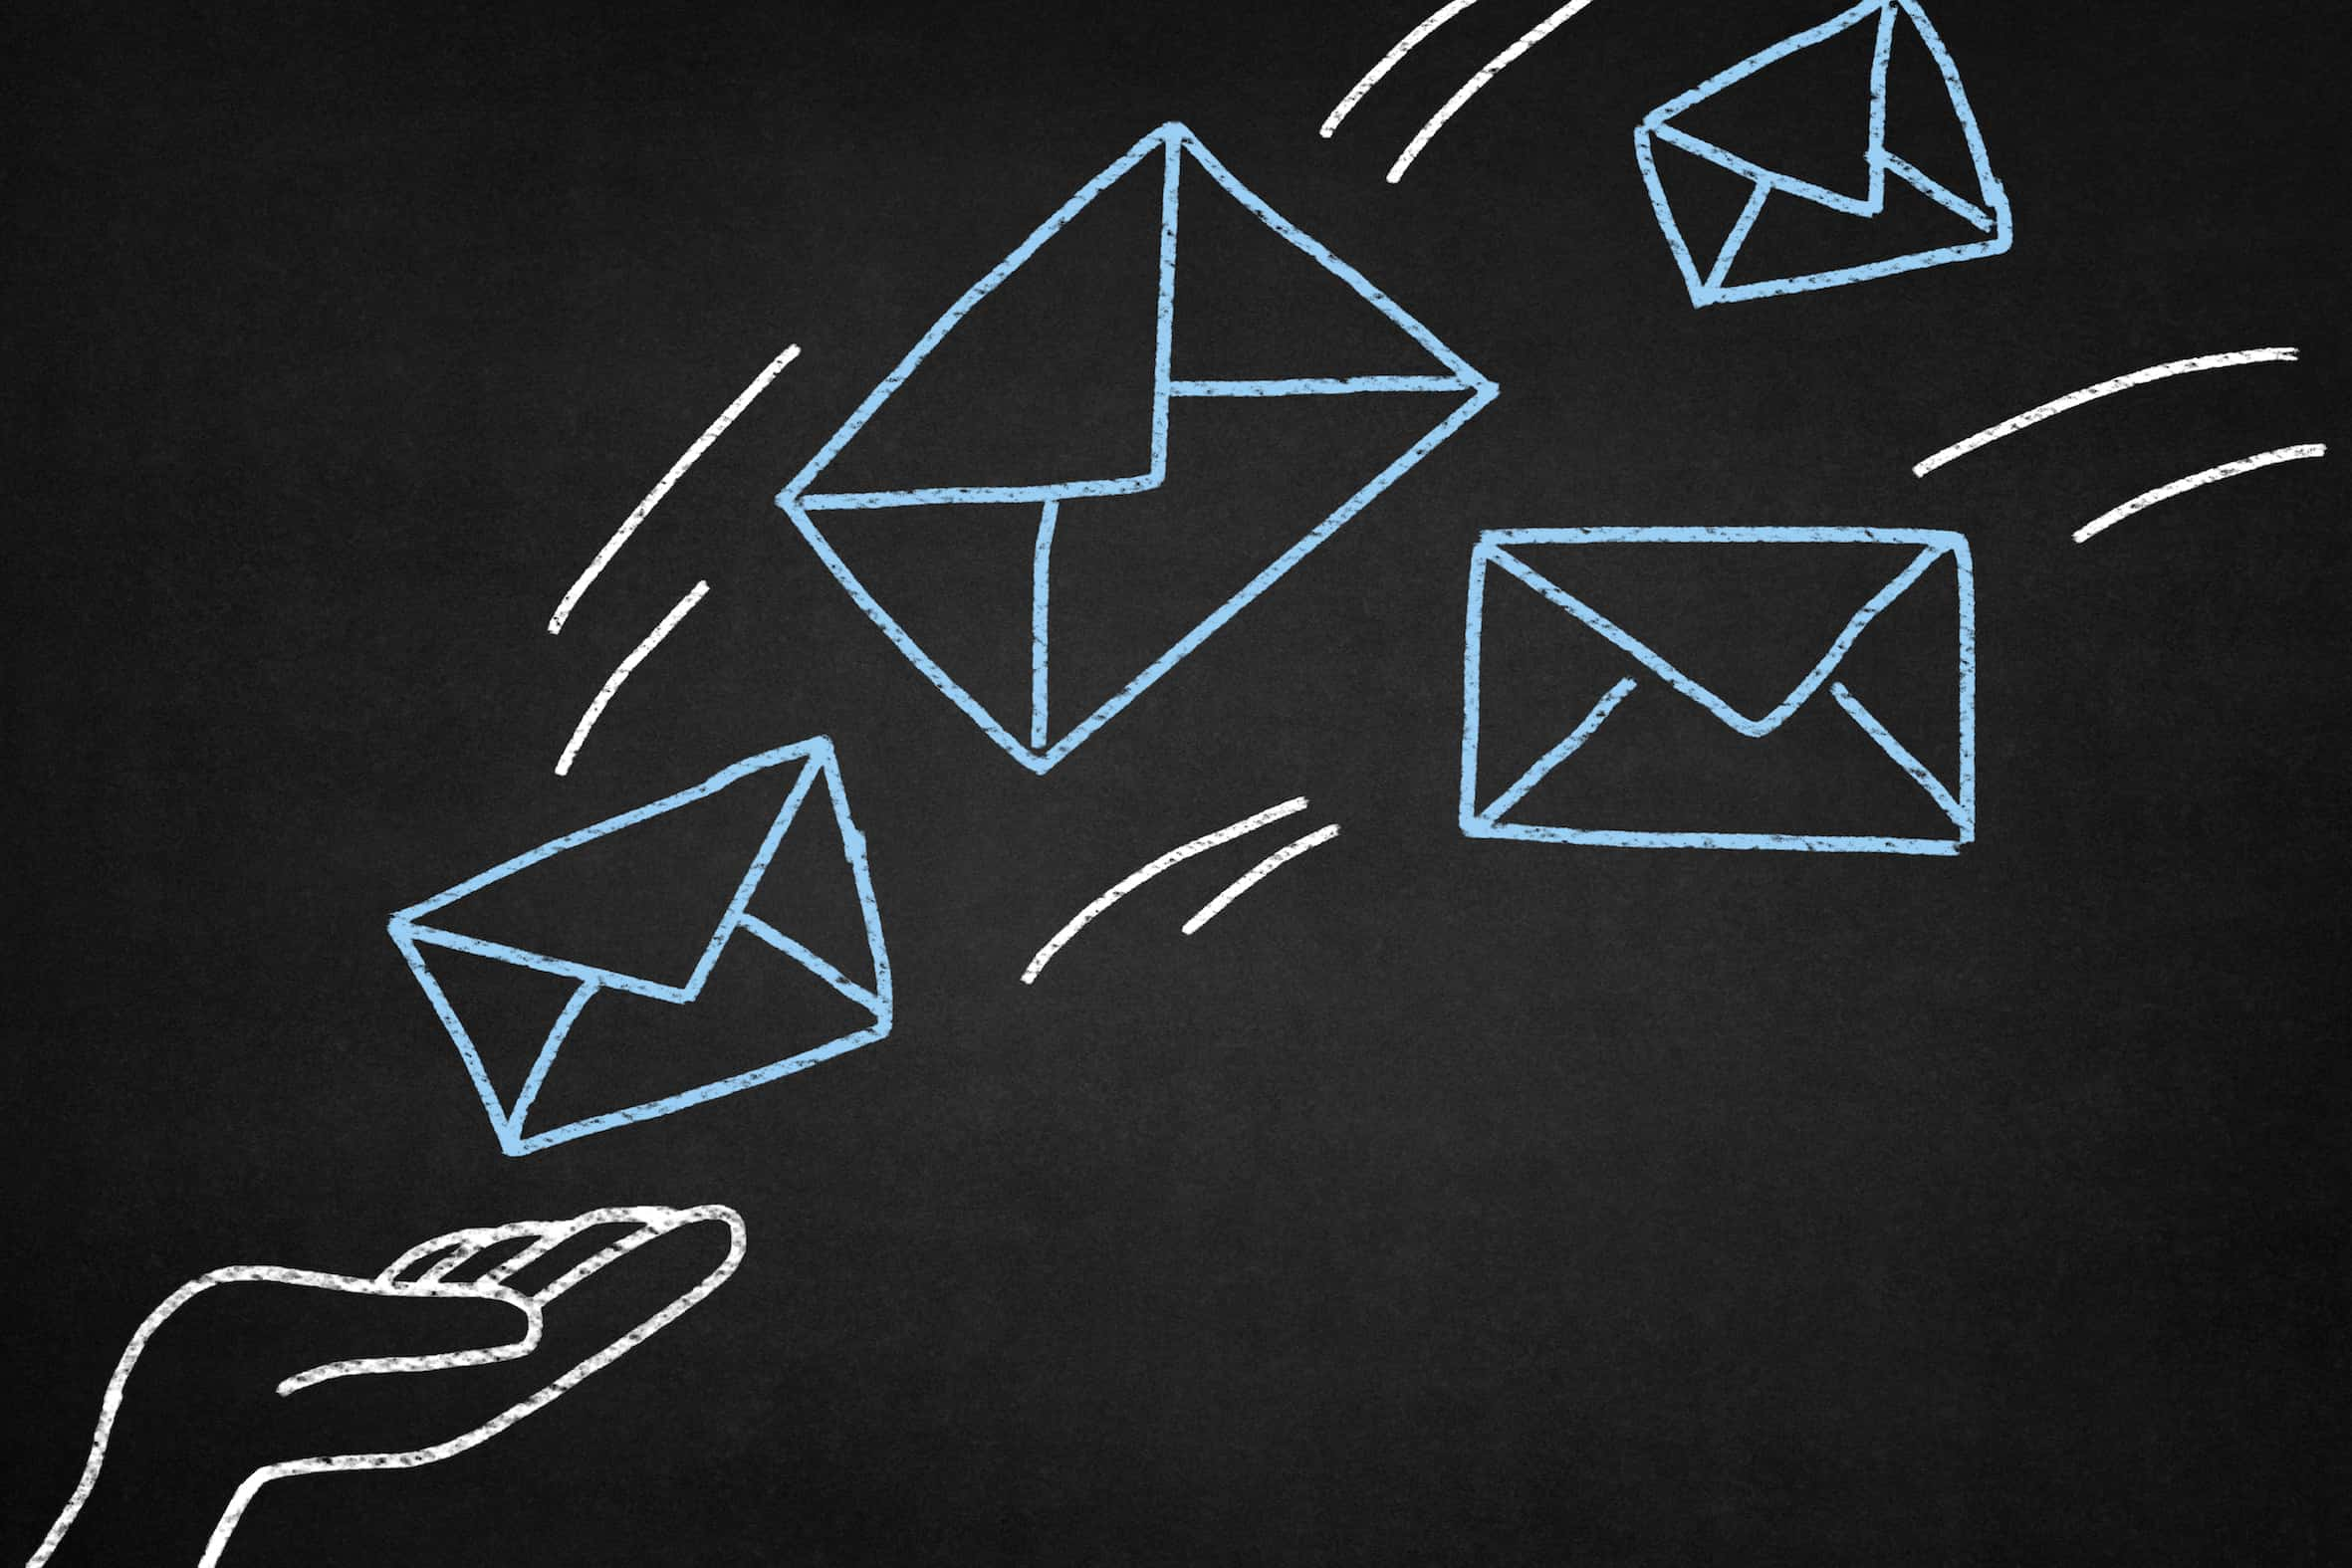 Email Subject Lines That Can Improve Your Sales Email, V2M2 Group, Inc.